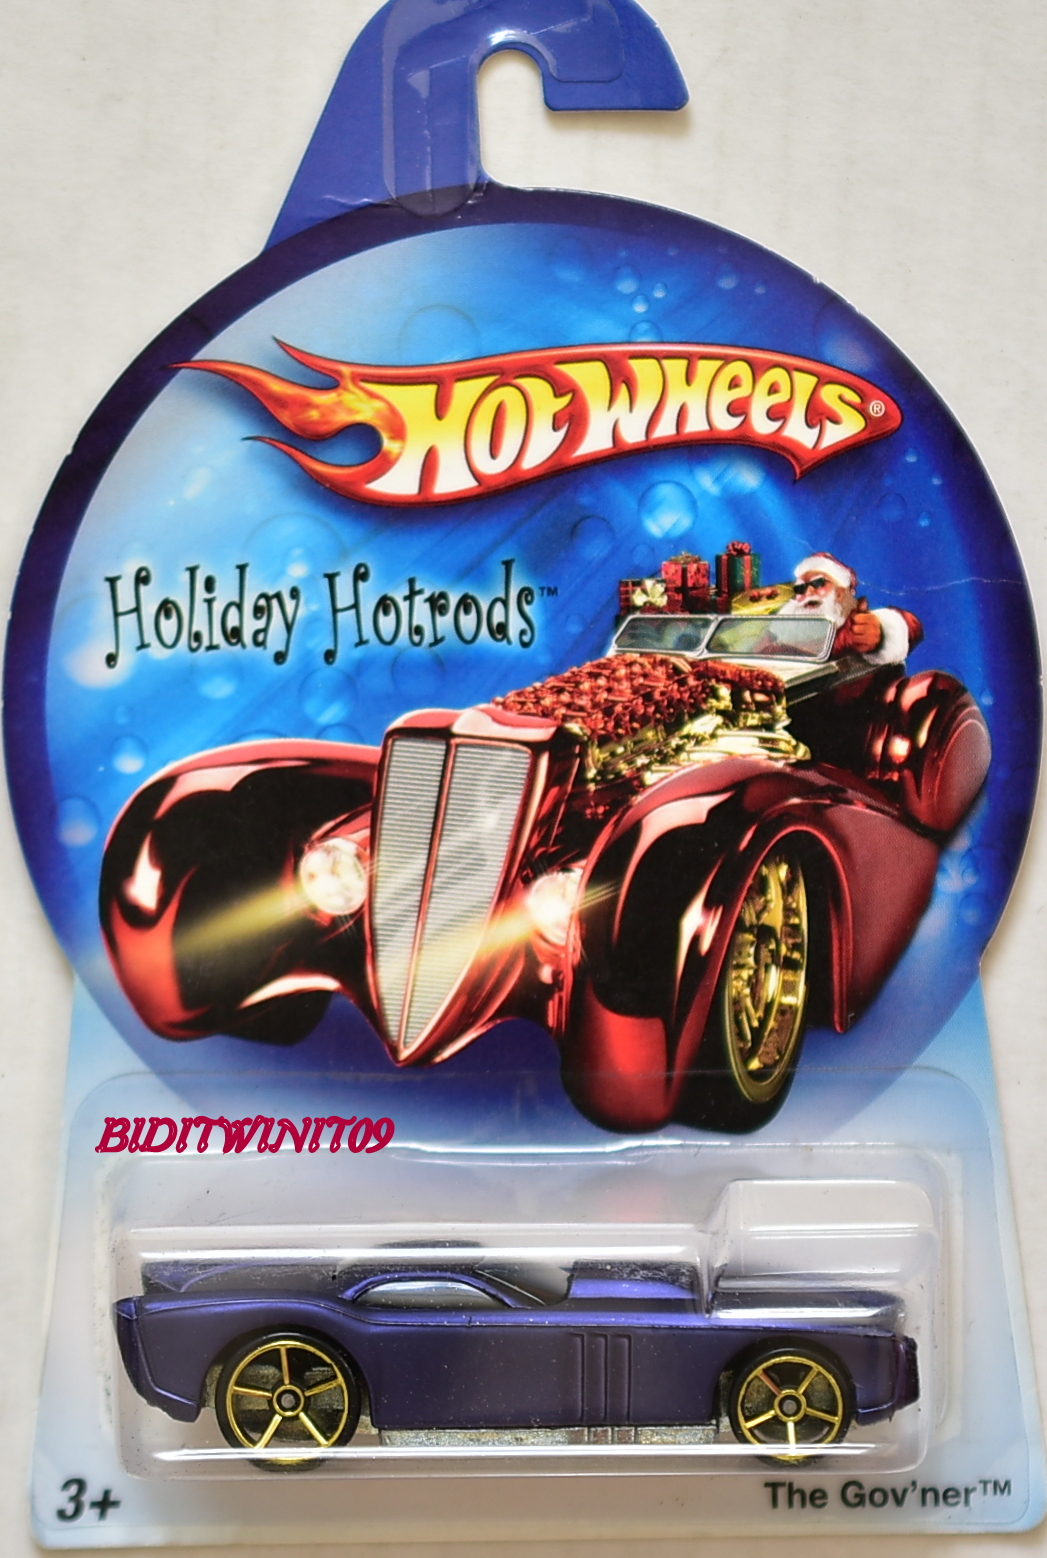 HOT WHEELS HOLIDAY HOT RODS THE GOV'NER